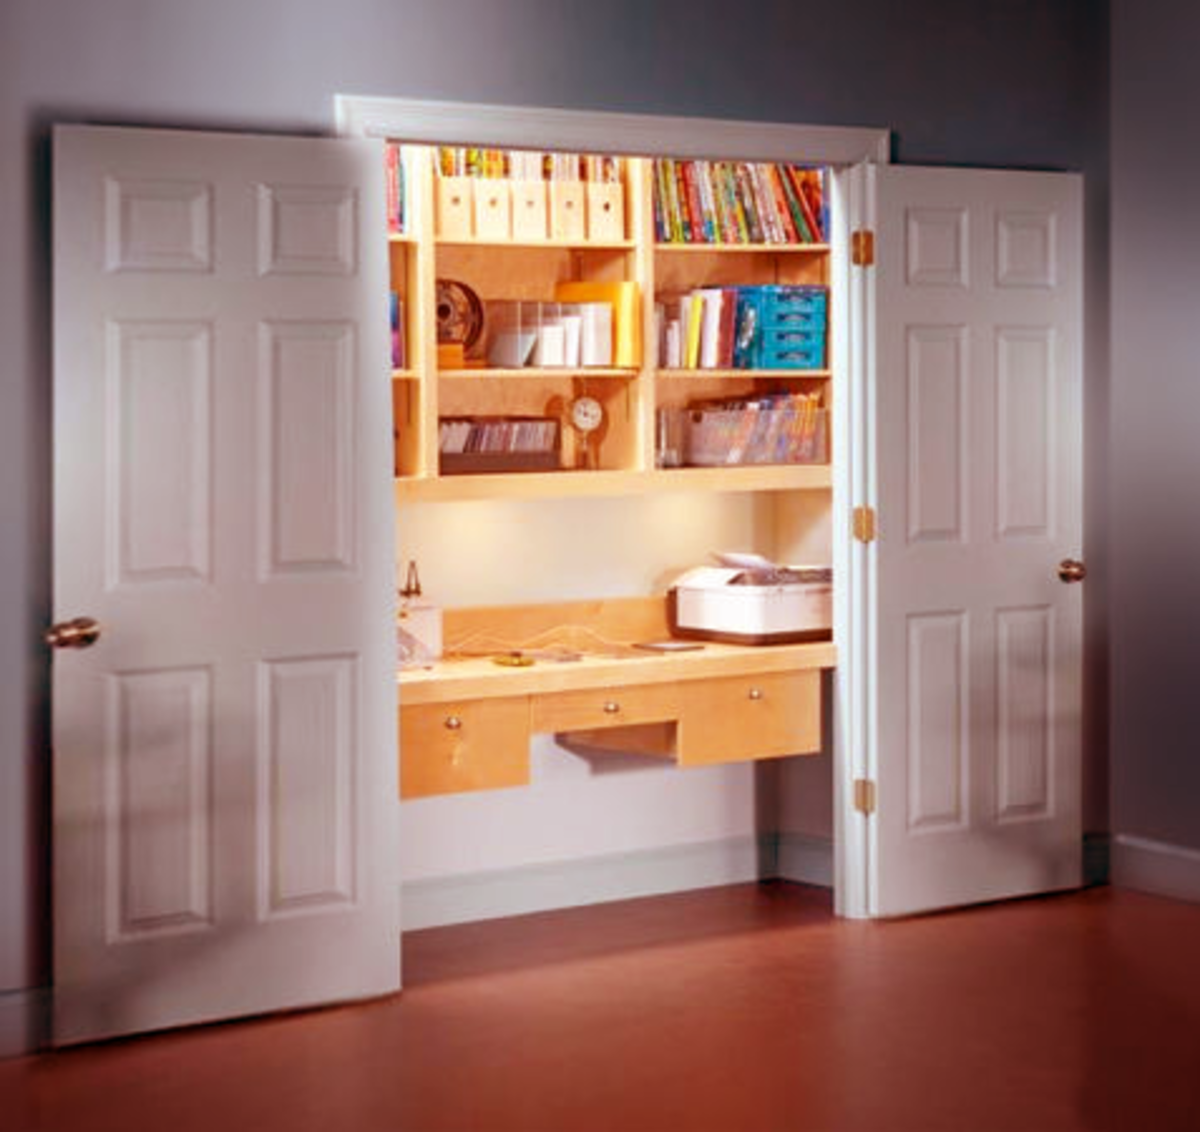 A closet is a great place to house home office equipment and supplies.